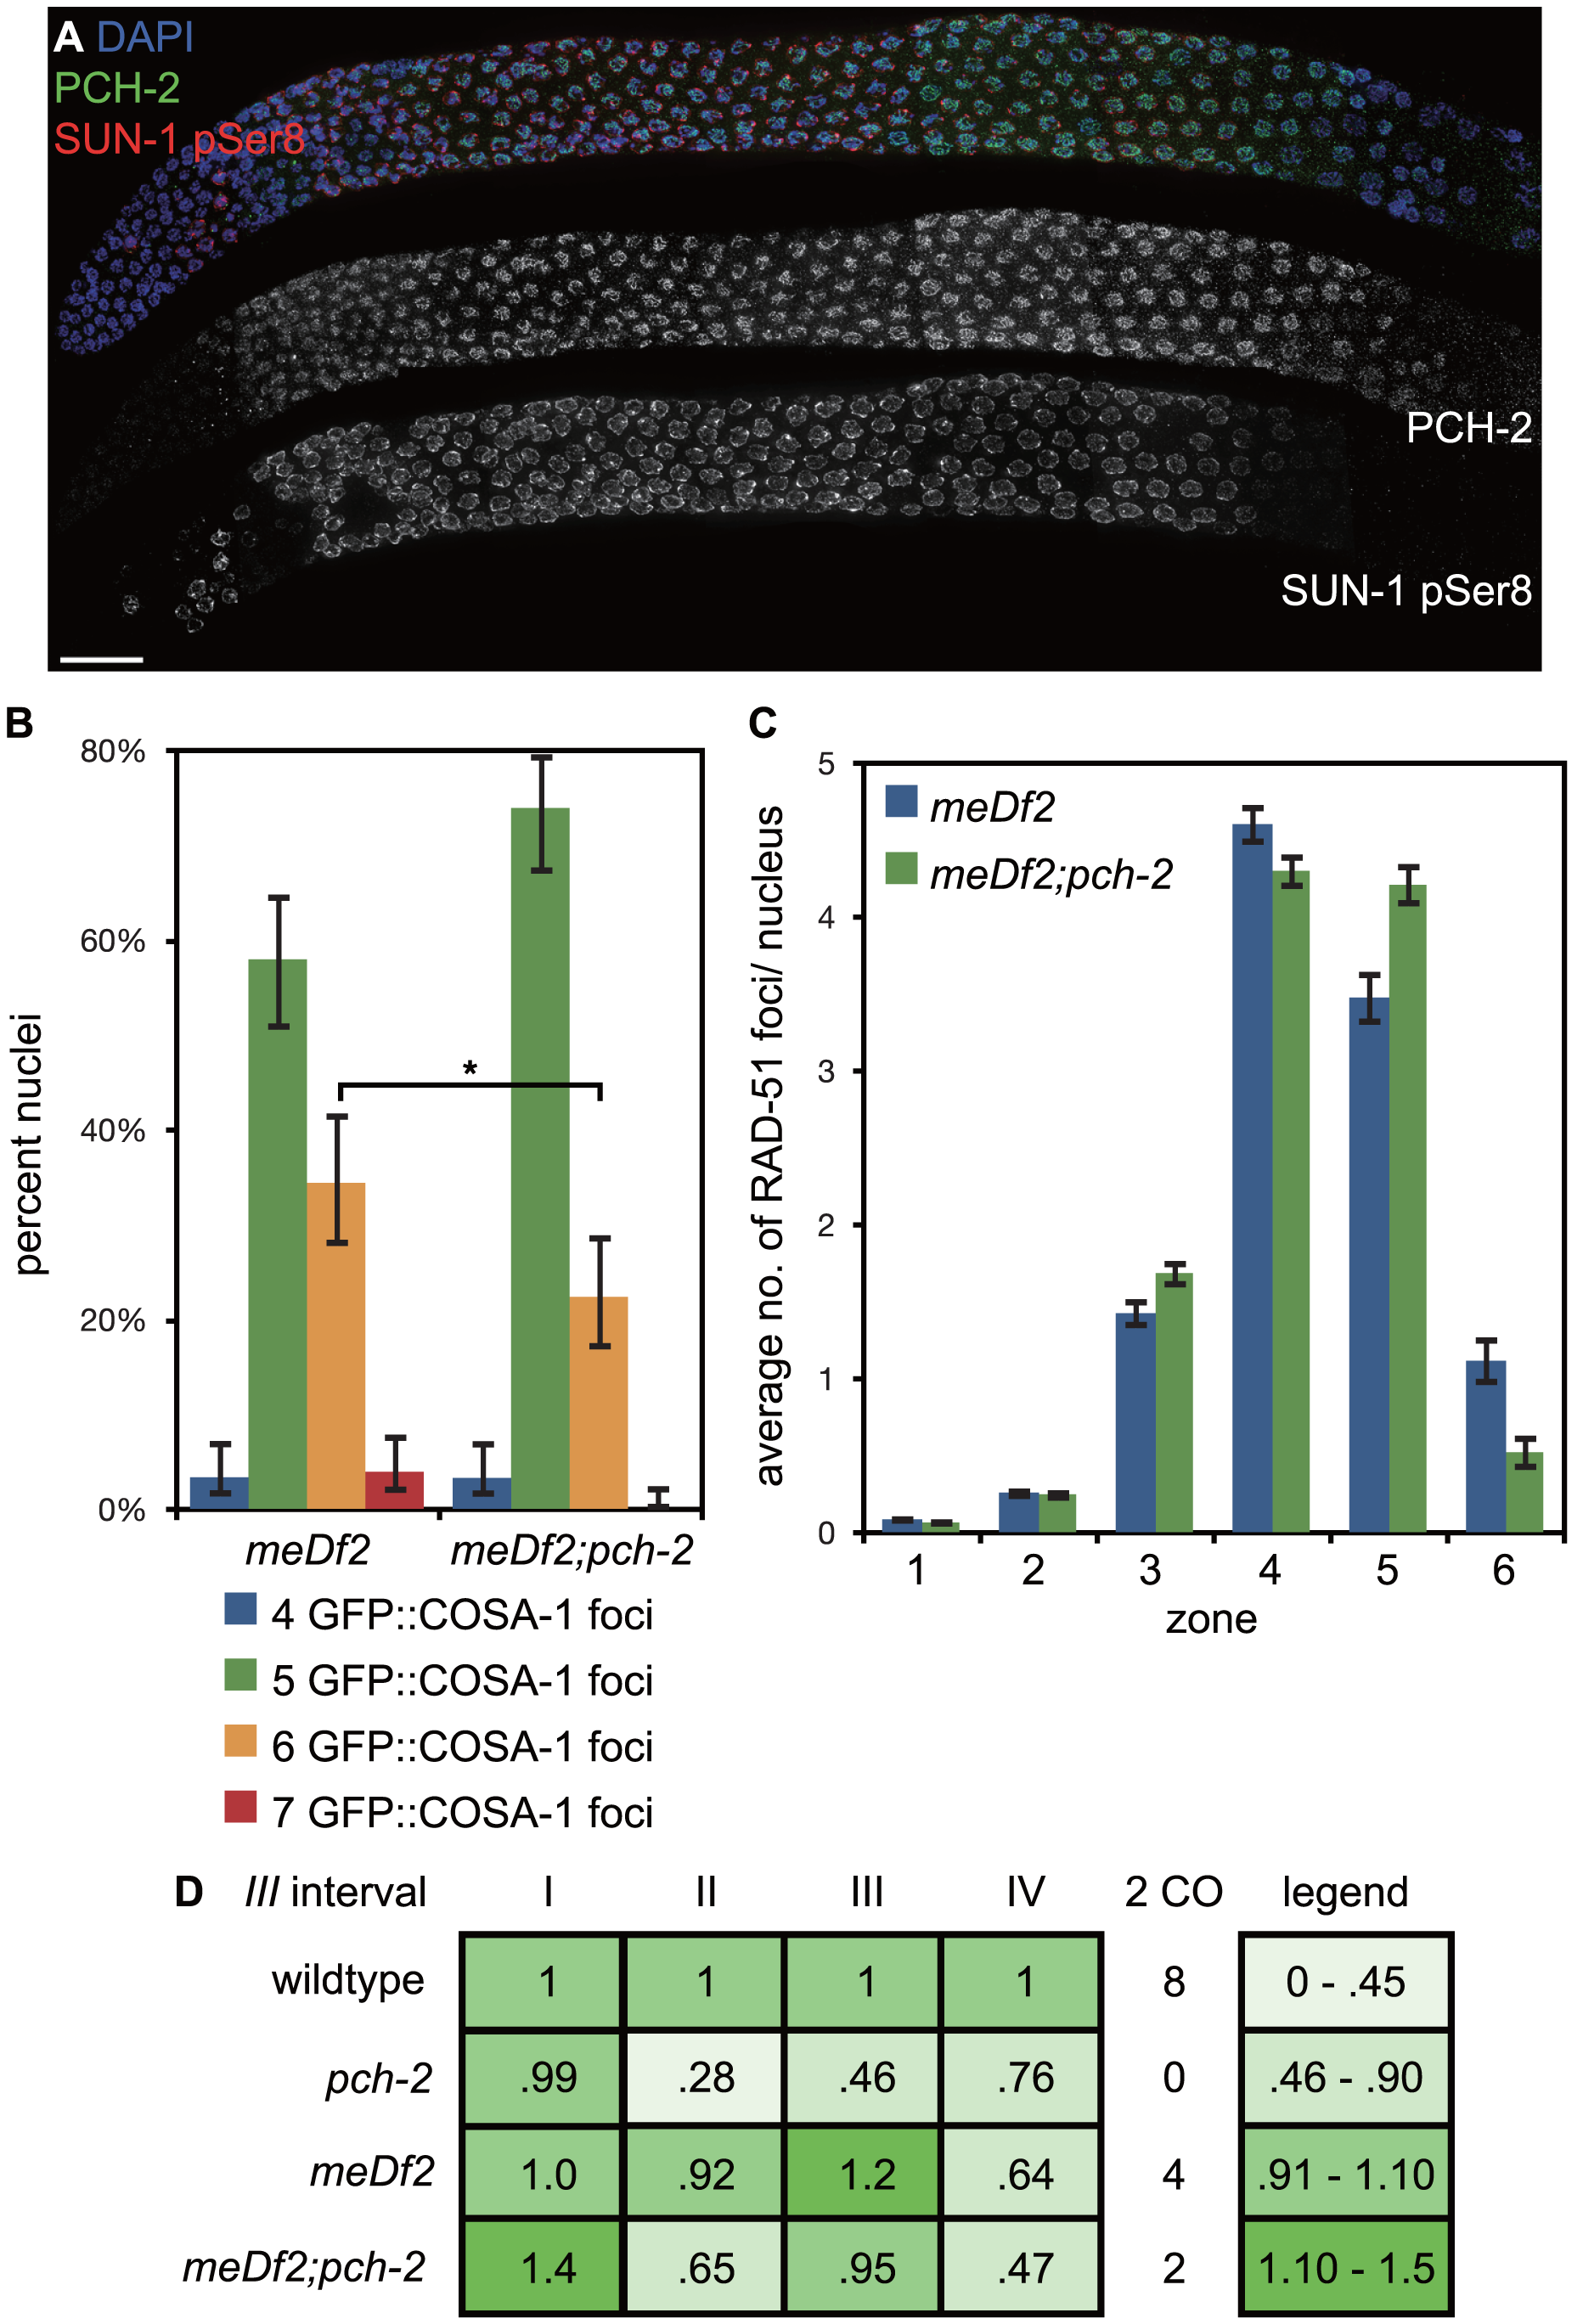 Mutation of <i>pch-2</i> reduces the percentage of nuclei with six GFP::COSA-1 foci in <i>meDf2</i> homozygotes.